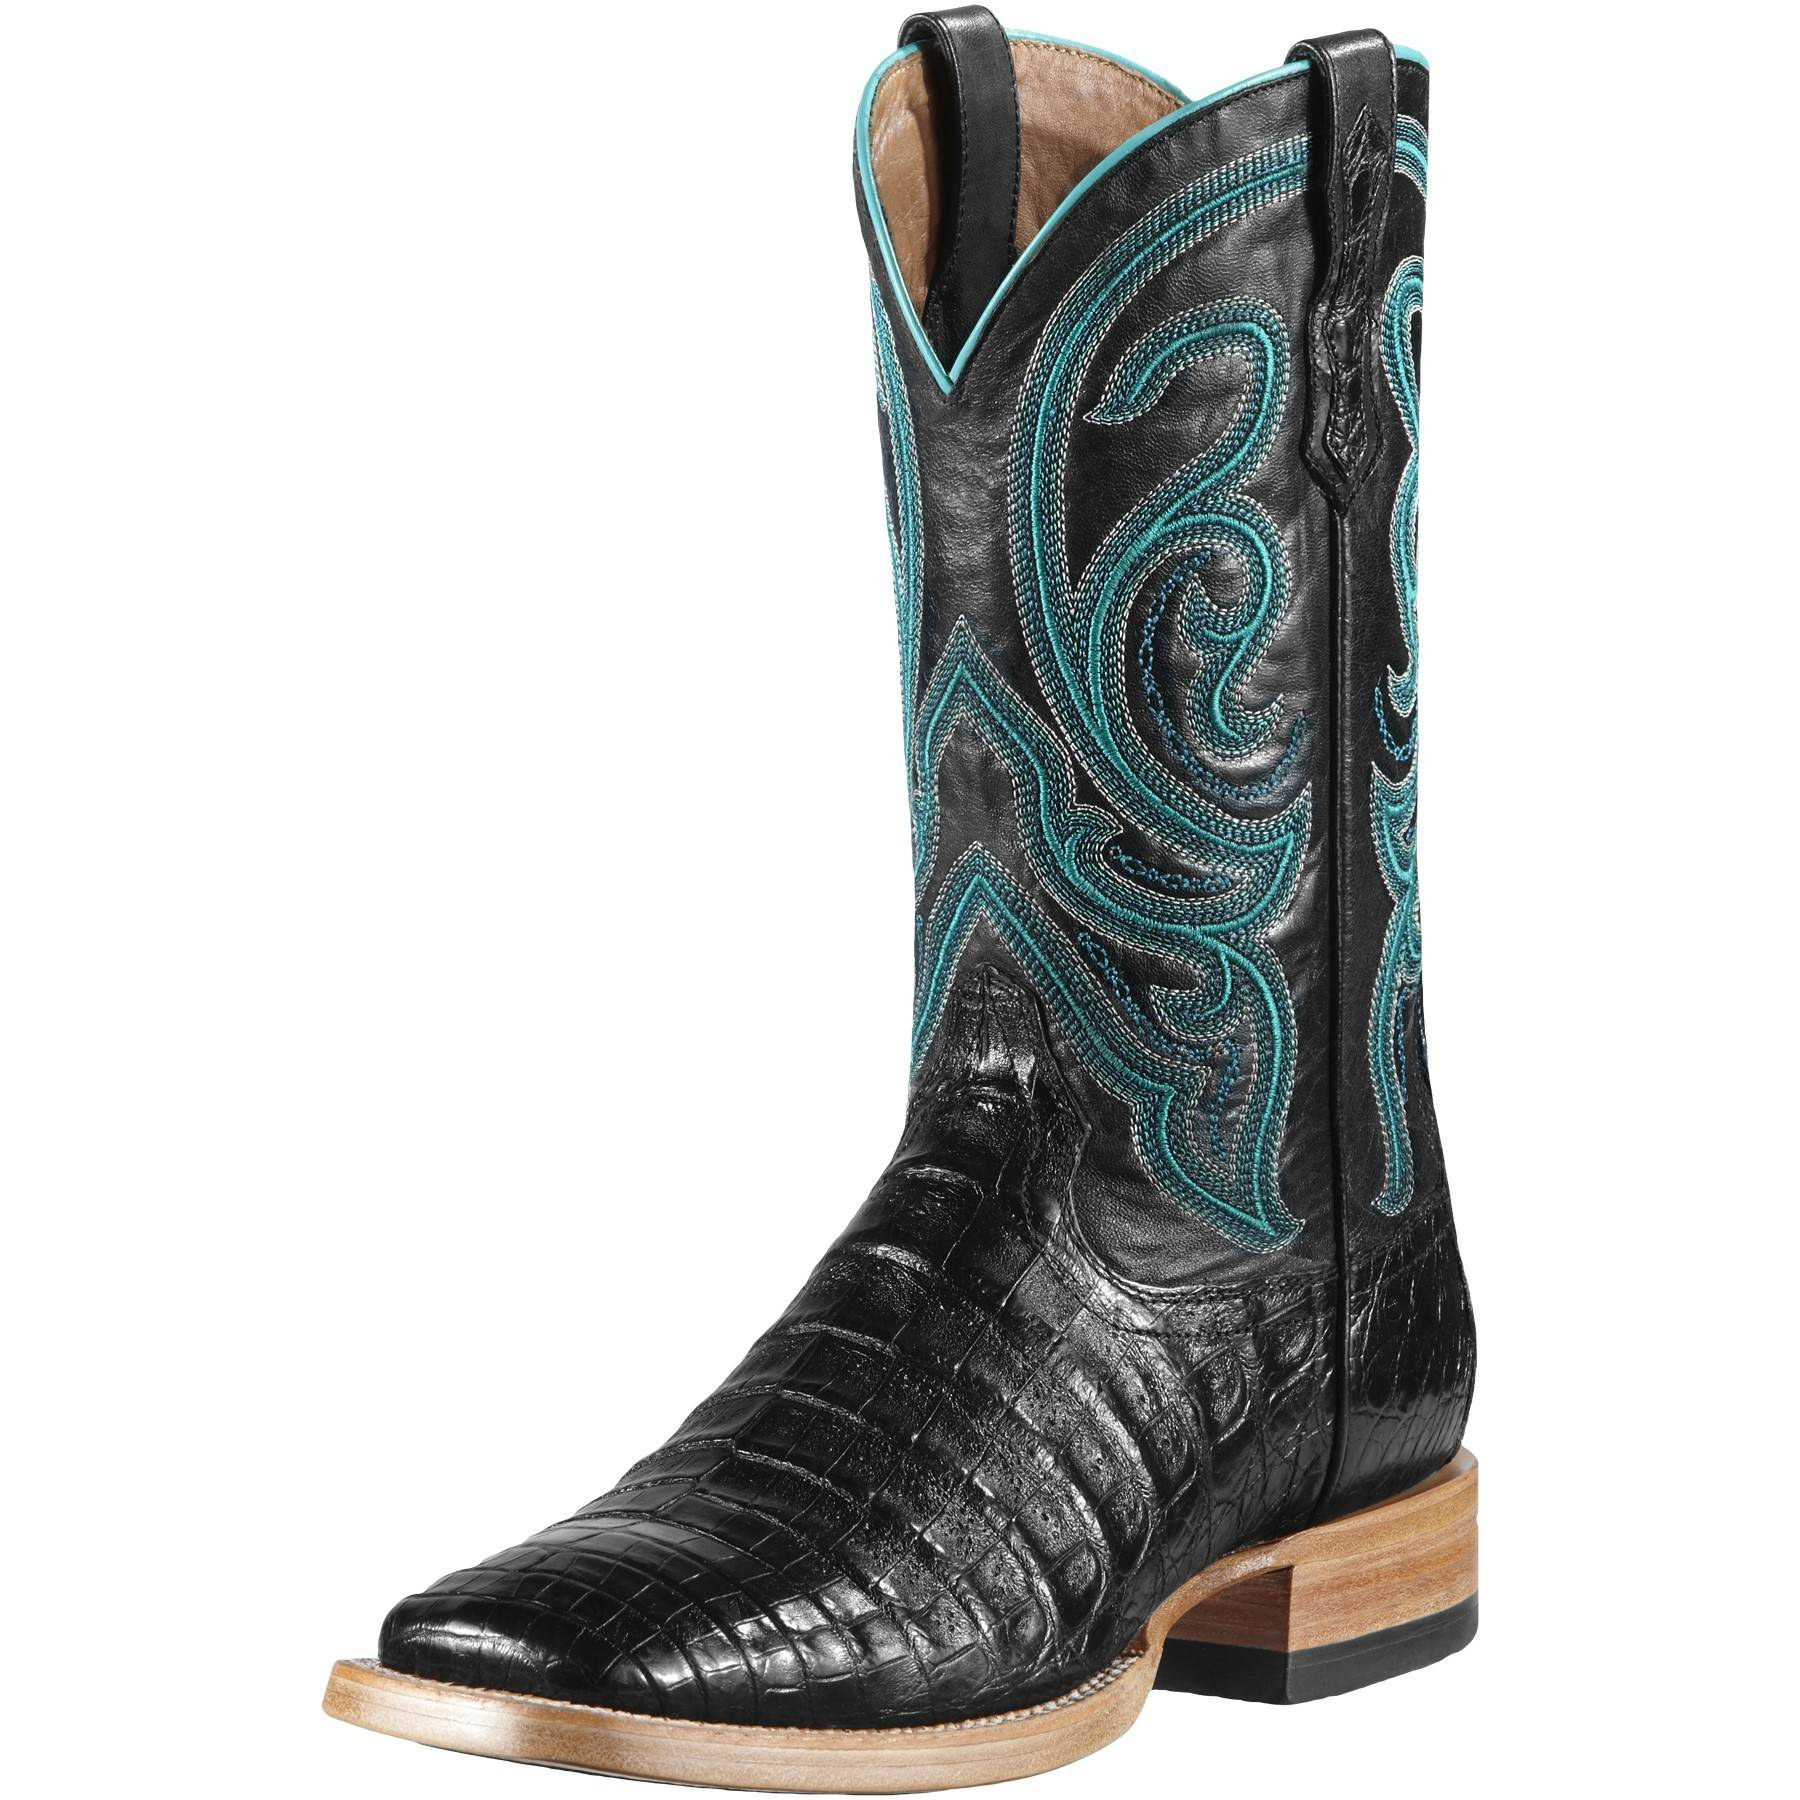 Ariat Caiman Boots xlaYER7A